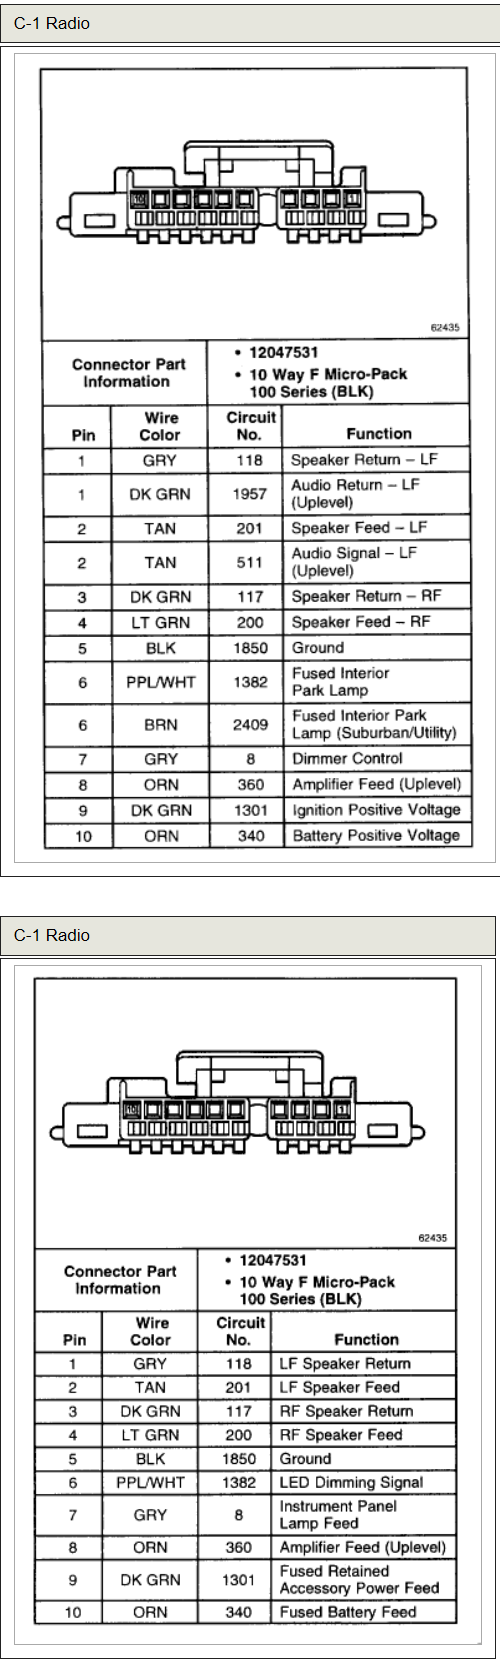 Chevrolet Car Radio Stereo Audio Wiring Diagram Autoradio Connector 2006 Chevy Silverado 1500 Harness Wire Installation Schematic Schema Esquema De Conexiones Anschlusskammern Konektor